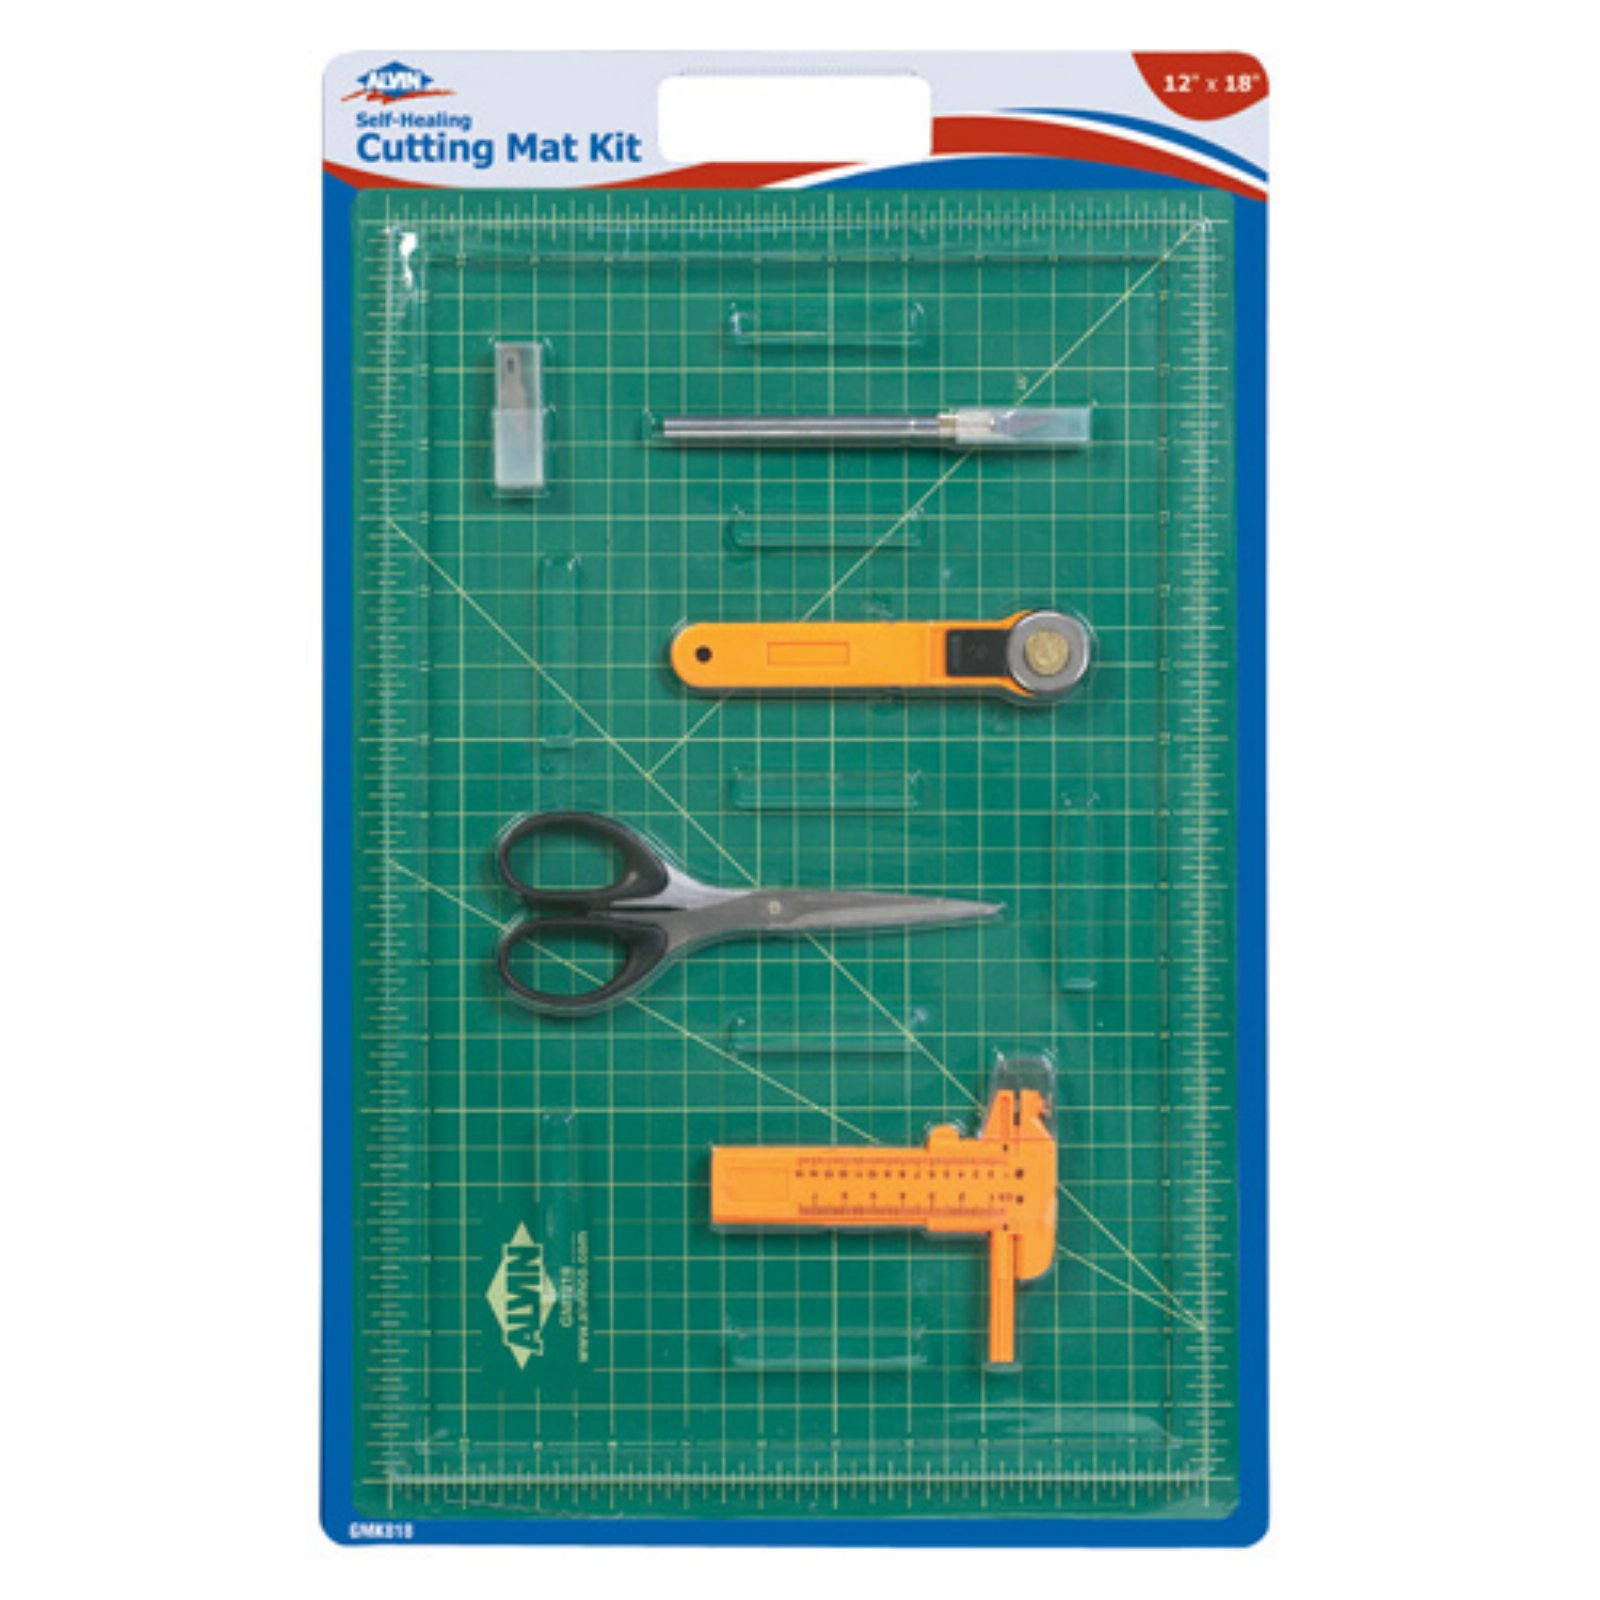 Alvin Self-Healing Cutting Mat Kit 12 x 18